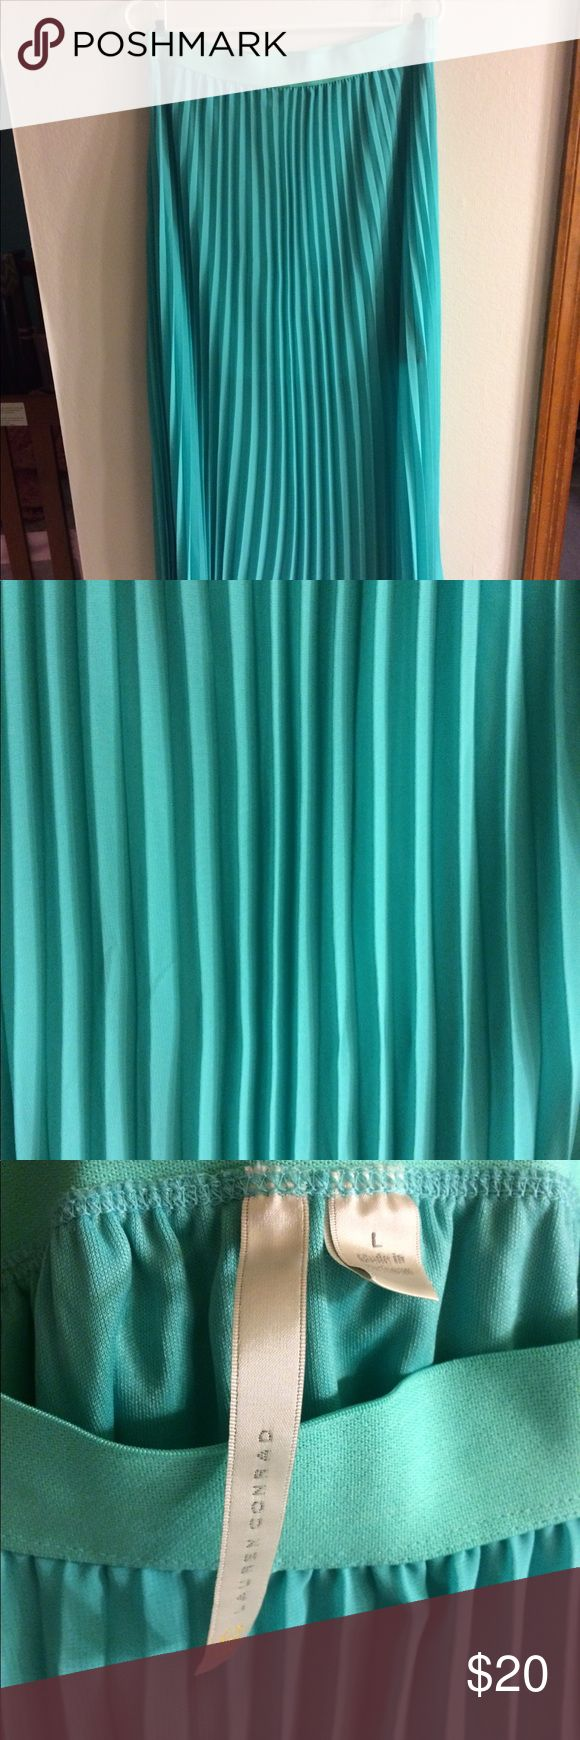 Lauren Conrad Maxi Skirt Lauren Conrad Chiffon Teal Maxi Skirt Size Large! Like new! Beautiful pleating and flow! LC Lauren Conrad Skirts Maxi